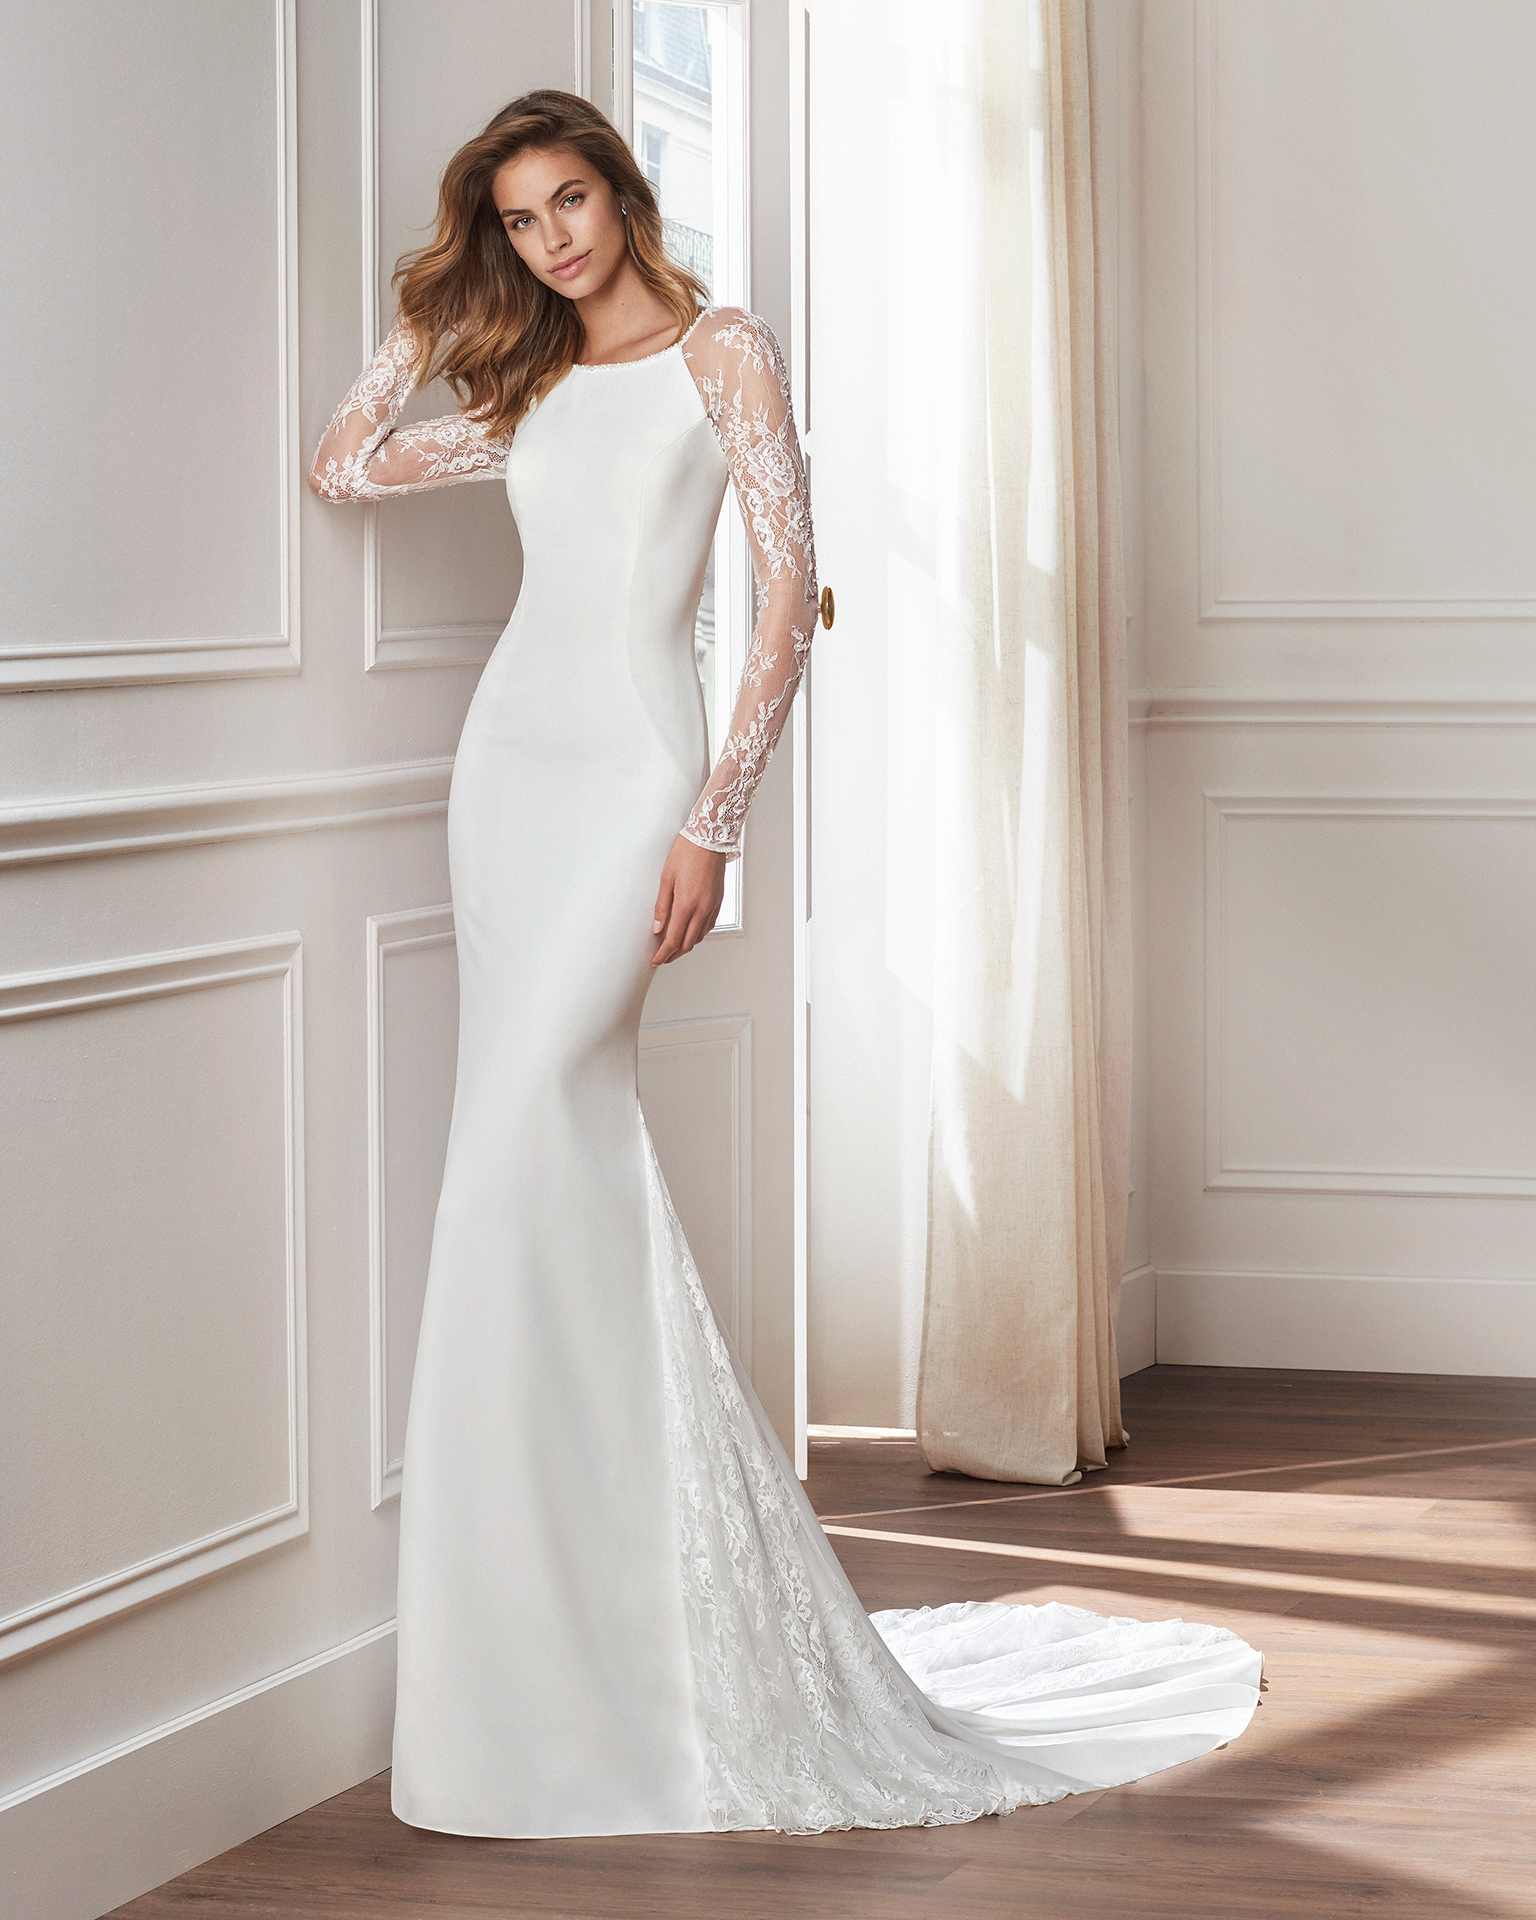 2018 Fashion Simple Beige Wedding Dresses Full Sleeve: Bridal 2019. Collection